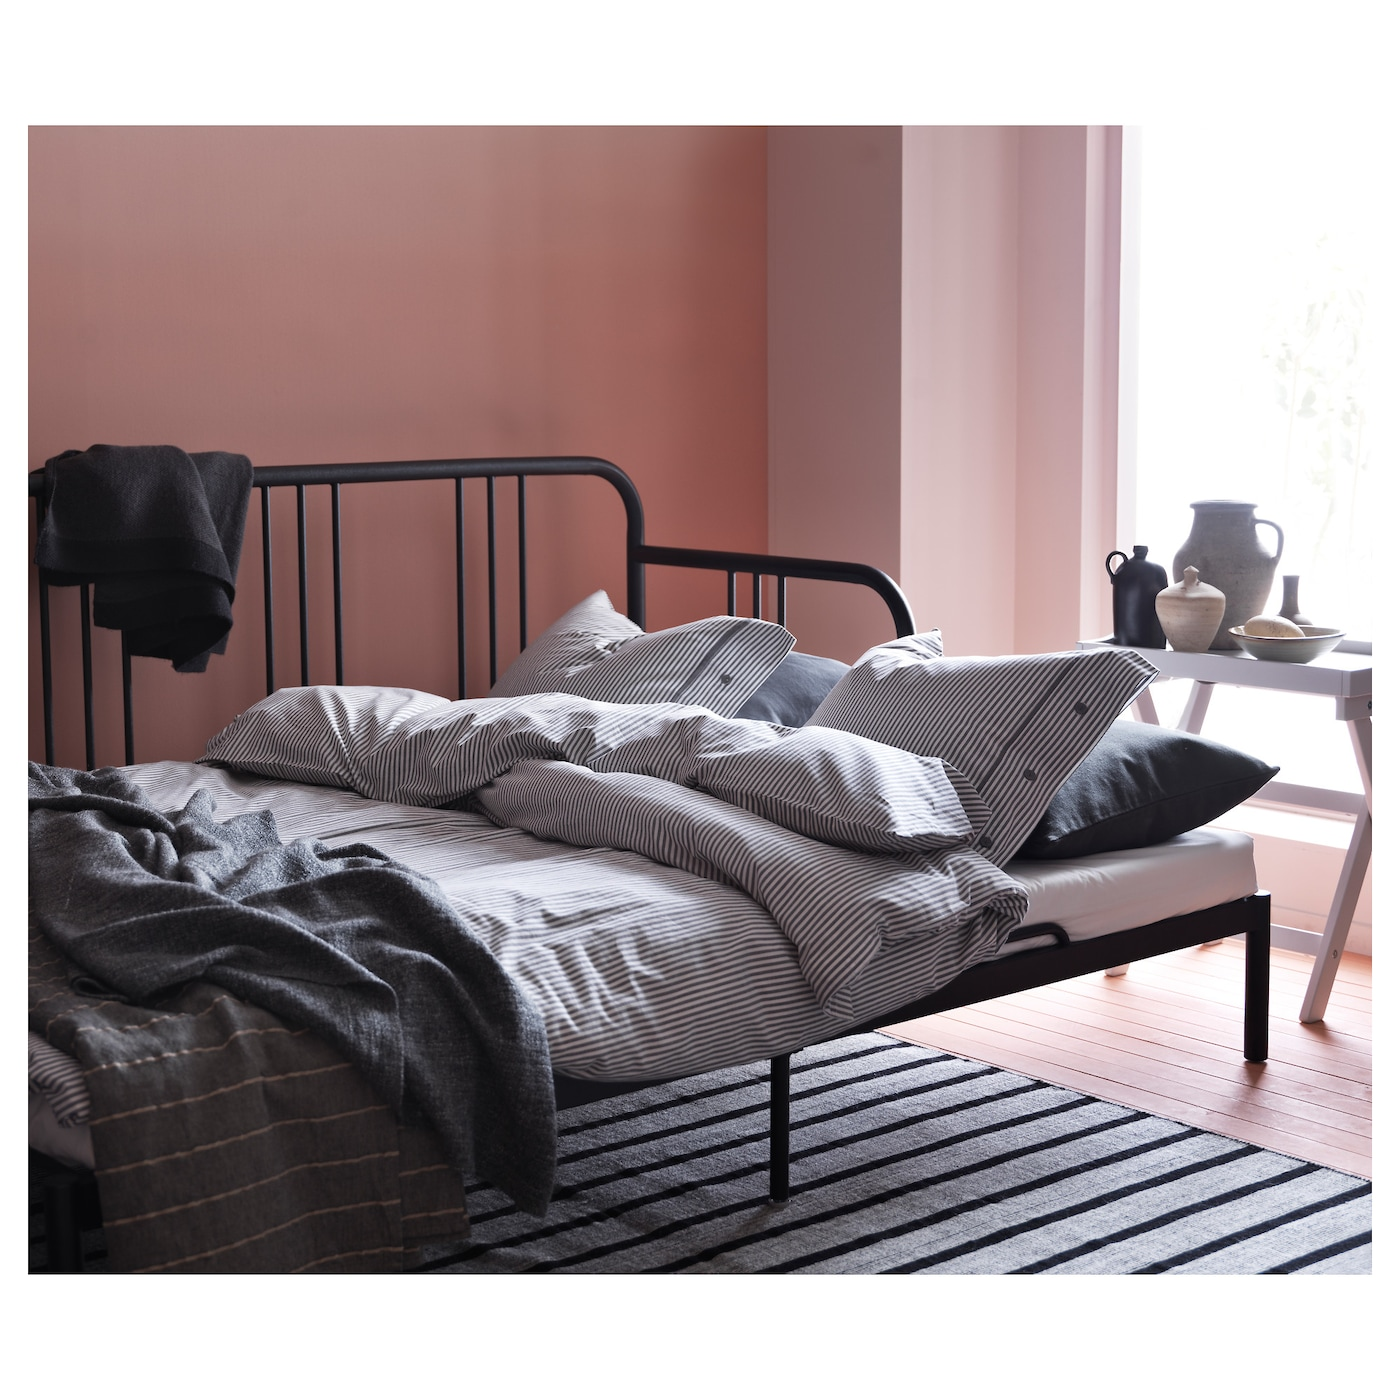 fyresdal divan avec 2 matelas noir malfors mi ferme 80x200 cm ikea. Black Bedroom Furniture Sets. Home Design Ideas